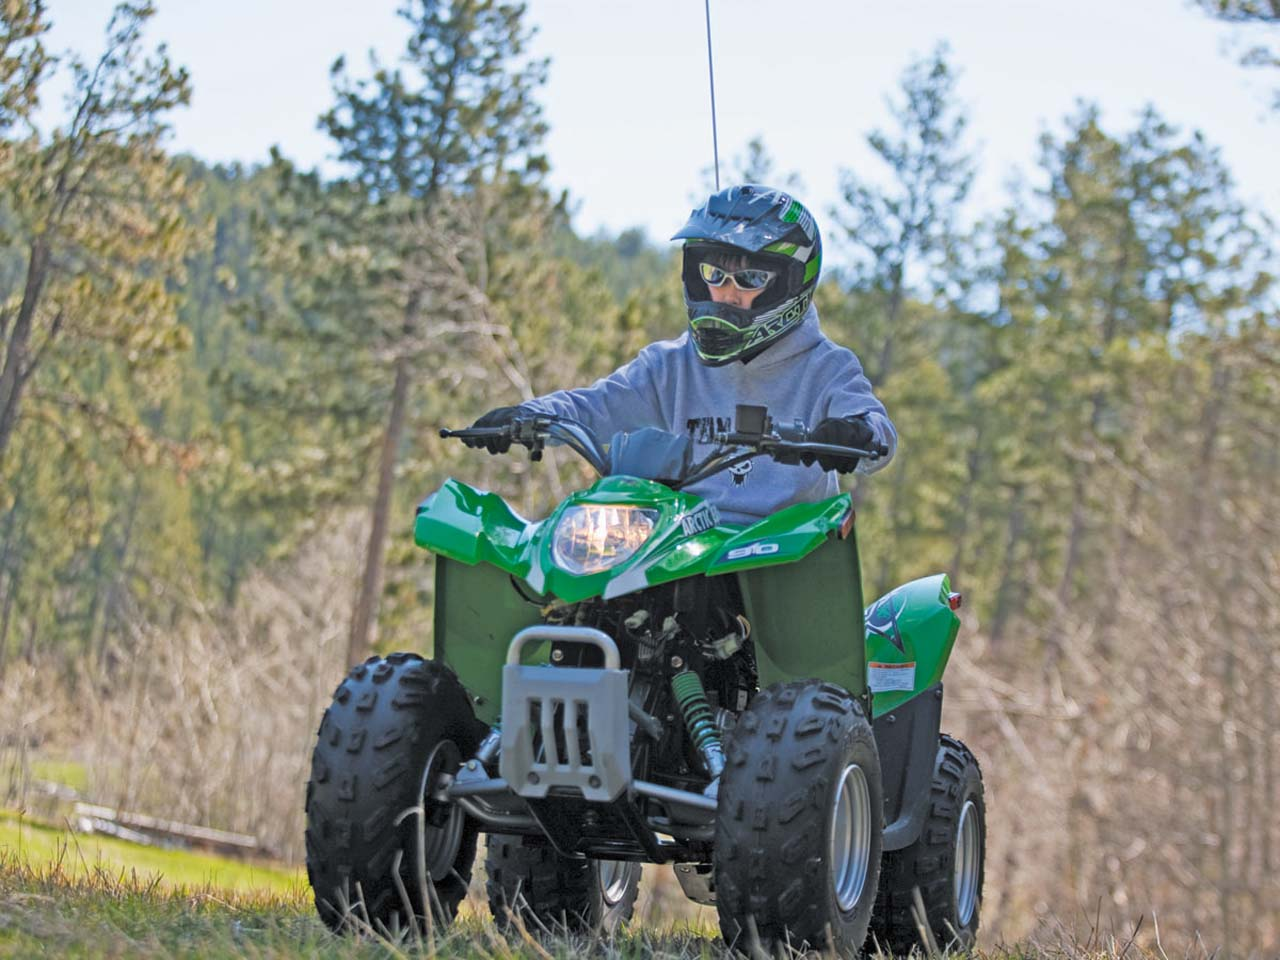 Youth quad round up mini quad buyers guide atv illustrated kymco recommends age 12 and over 2011ctic cat90dvxont lefteenriding publicscrutiny Gallery